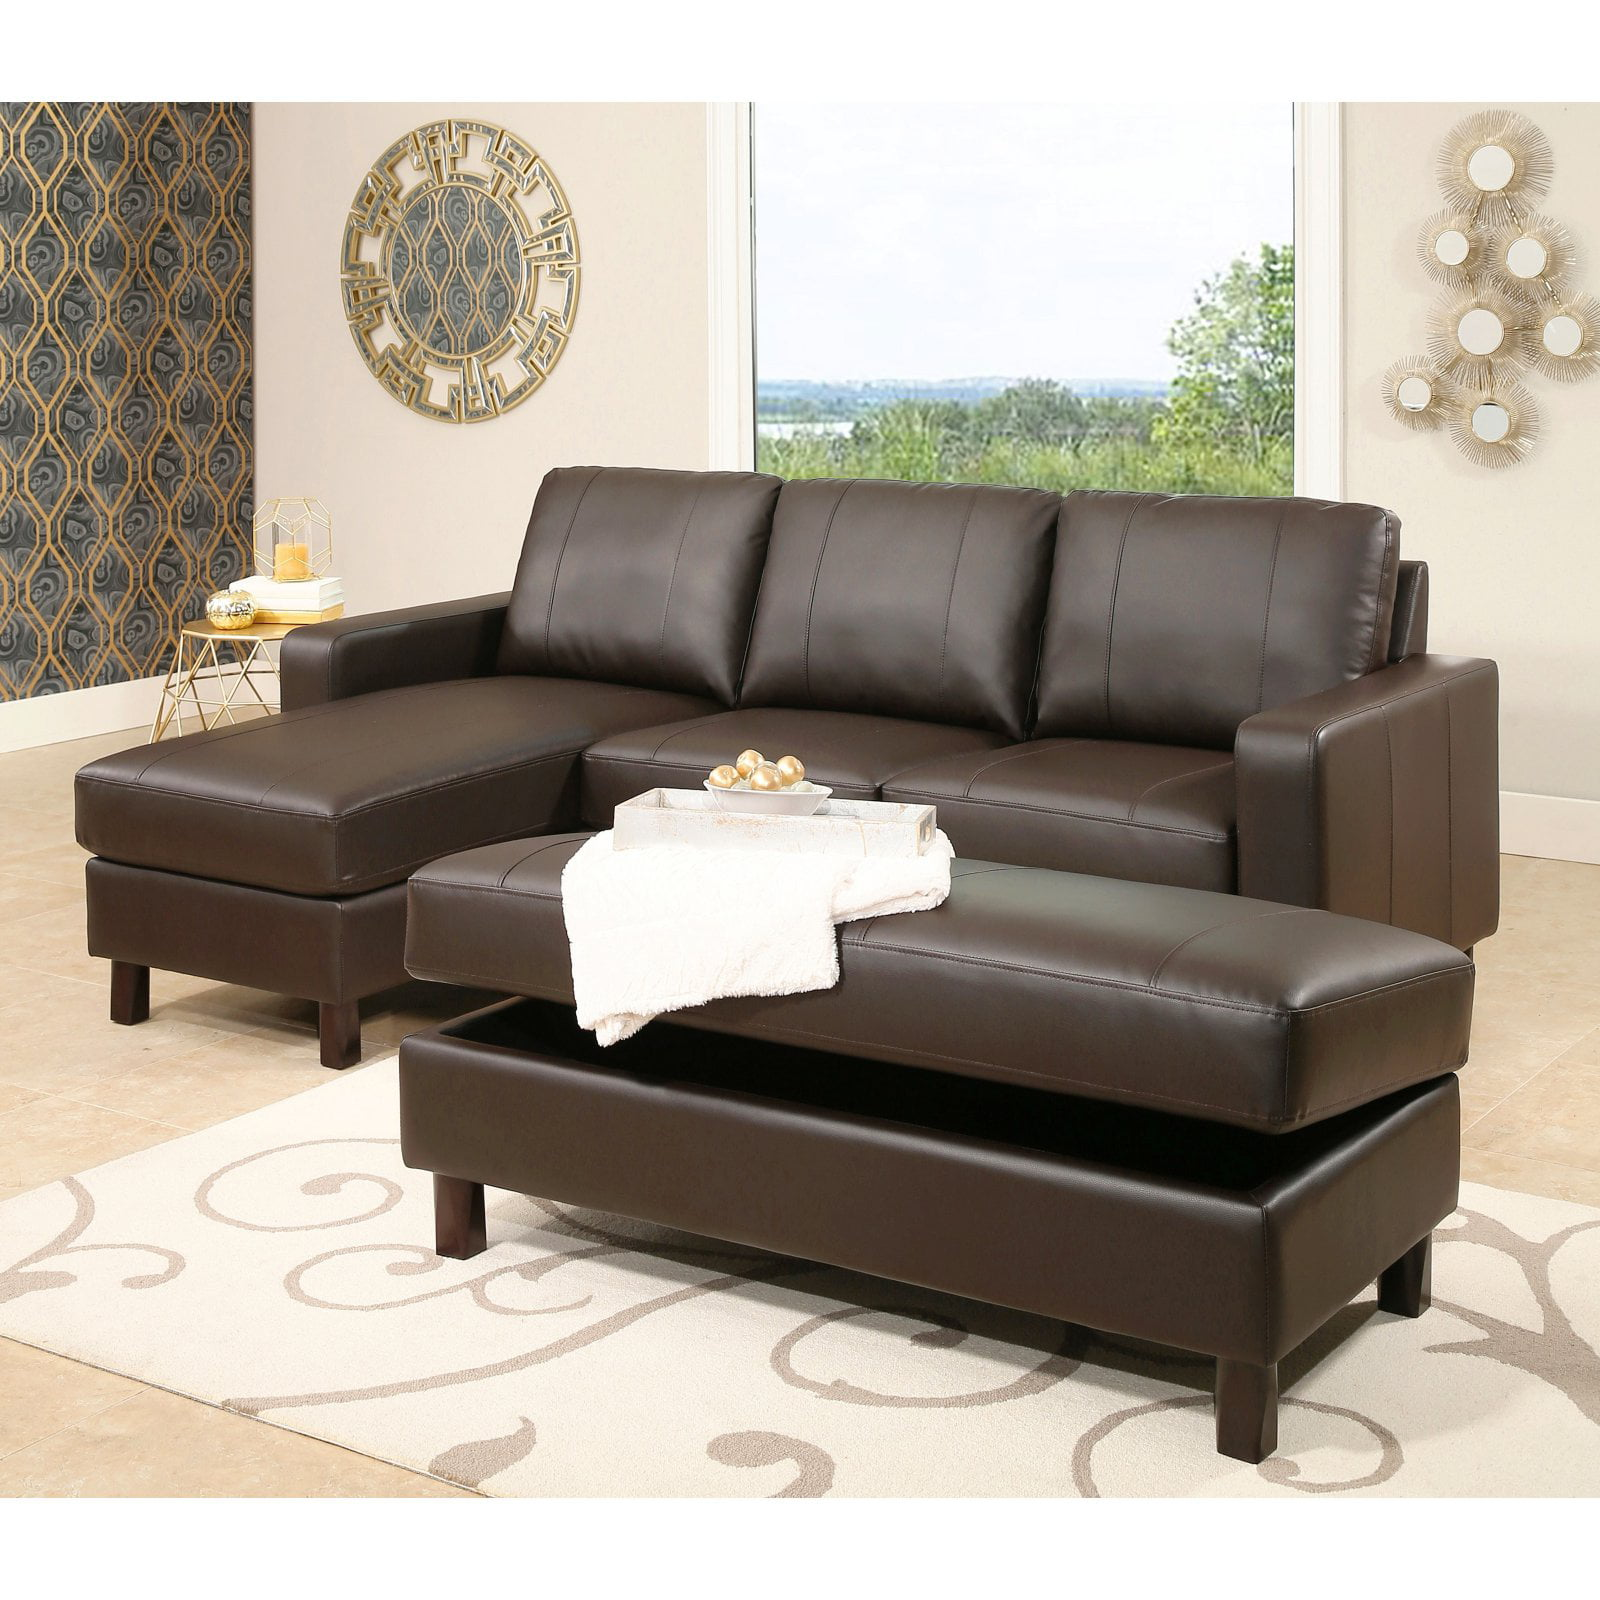 Abbyson Cedar Leather Reversible Sectional Sofa With Storage Ottoman